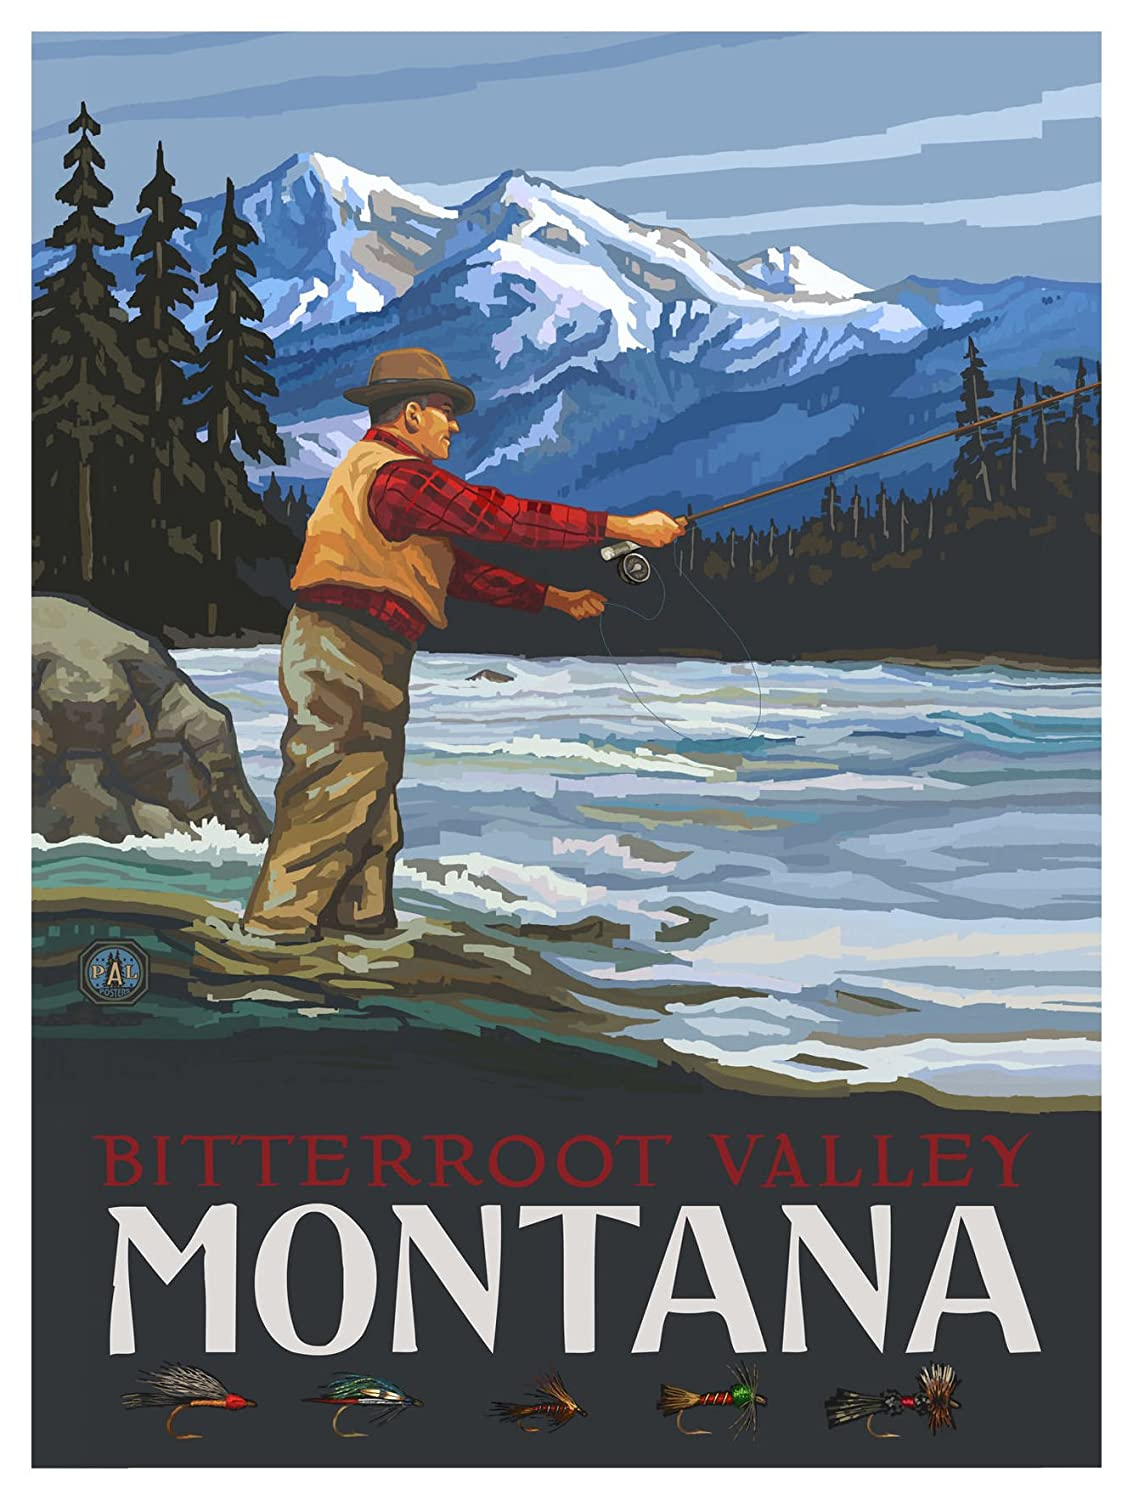 Bitterroot Valley Montana Fly Fisherman Stream Mountains Travel Art Print Poster by Paul A Lanquist 12 x 18